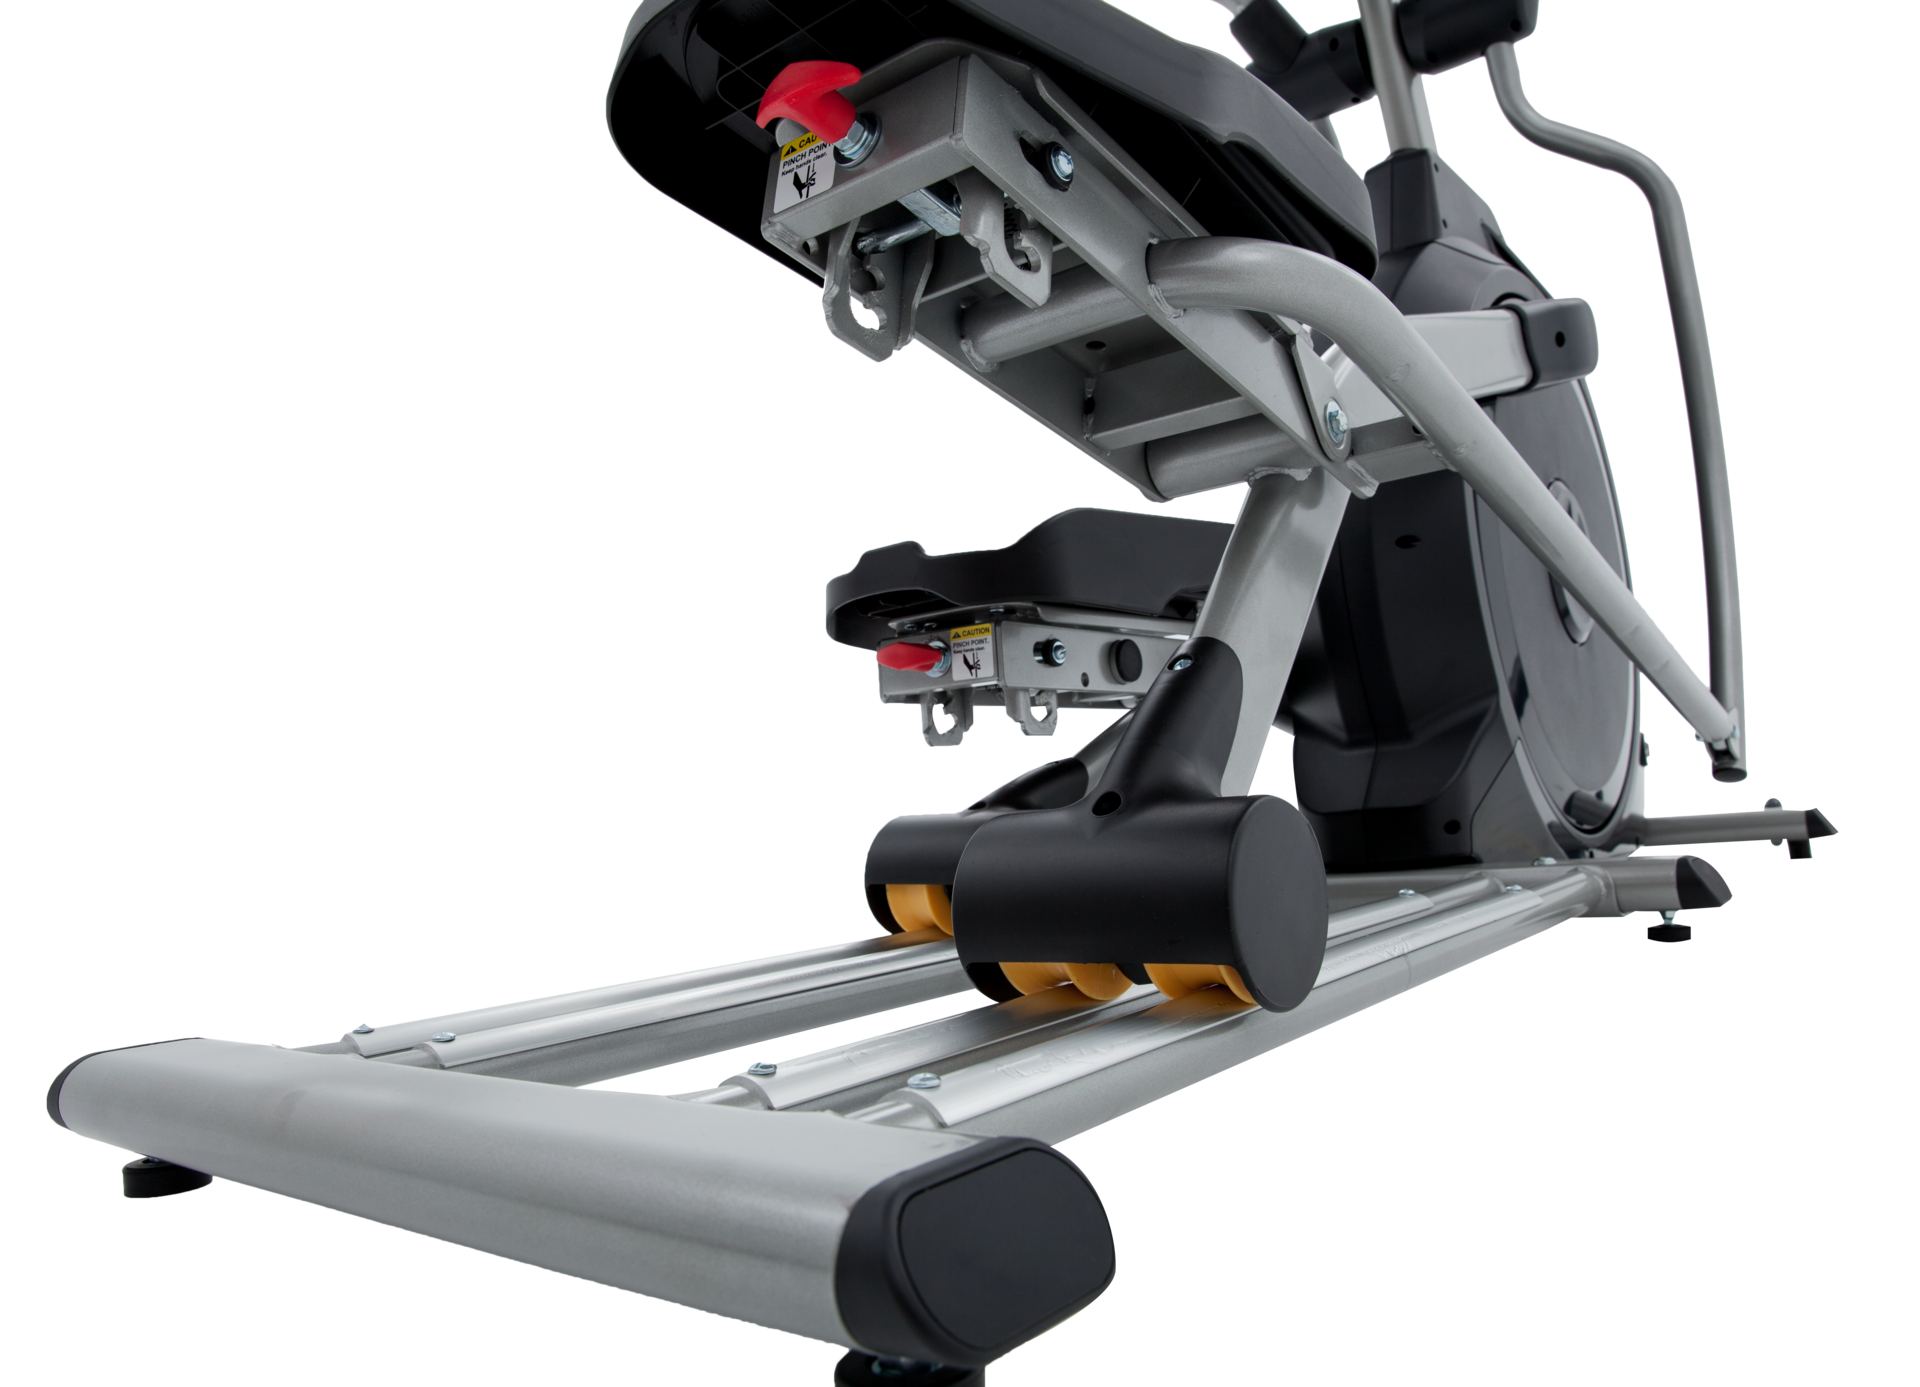 uploads gym equipment gym equipment PNG180 4